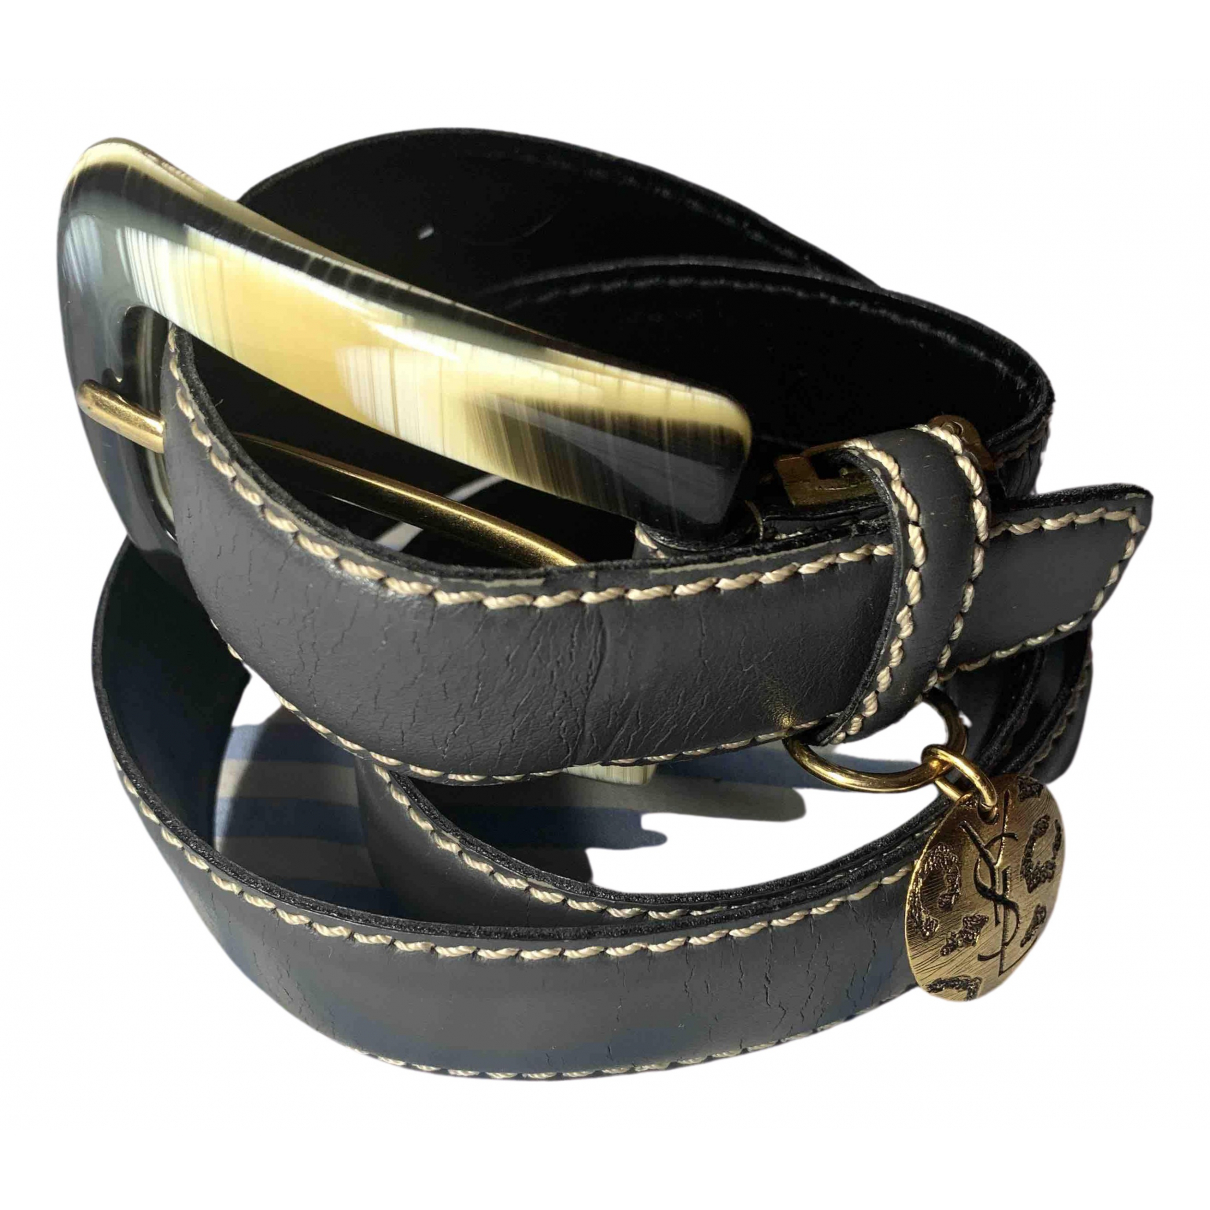 Yves Saint Laurent \N Grey Leather belt for Women M International